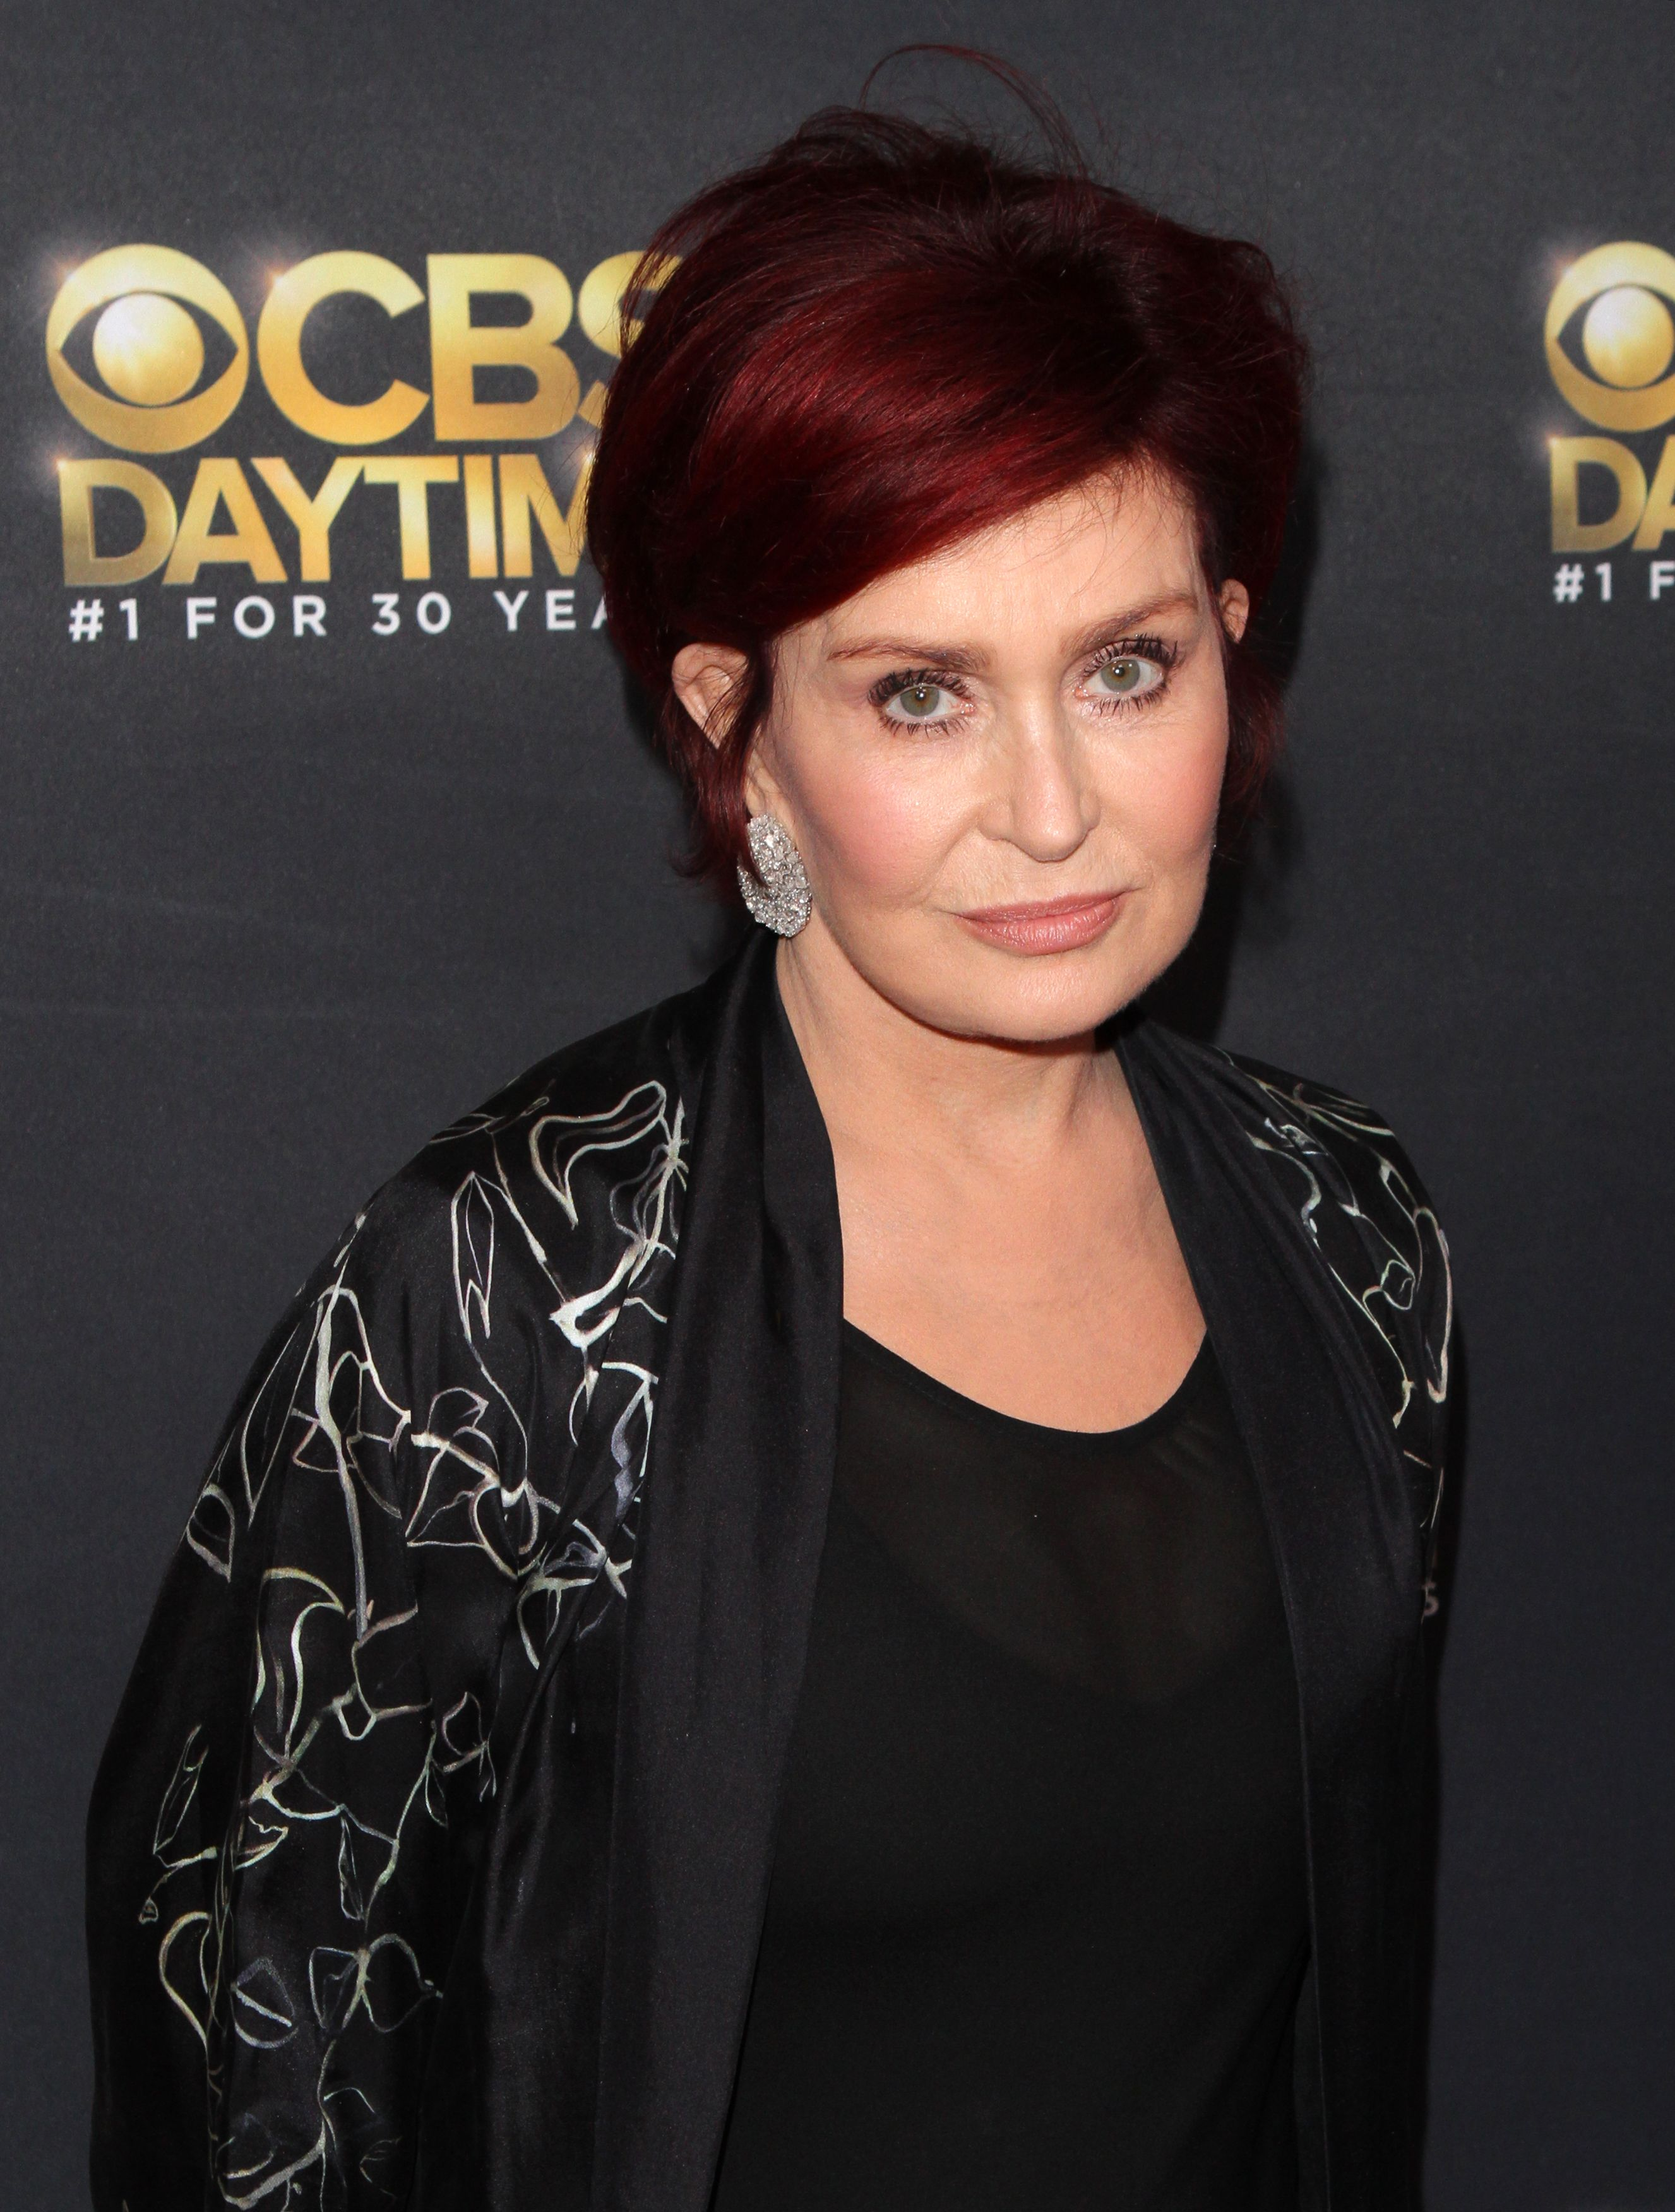 Sharon Osbourne attends the CBS Daytime Emmy after party at Pasadena Civic Auditorium on April 30, 2017. | Photo: Getty Images